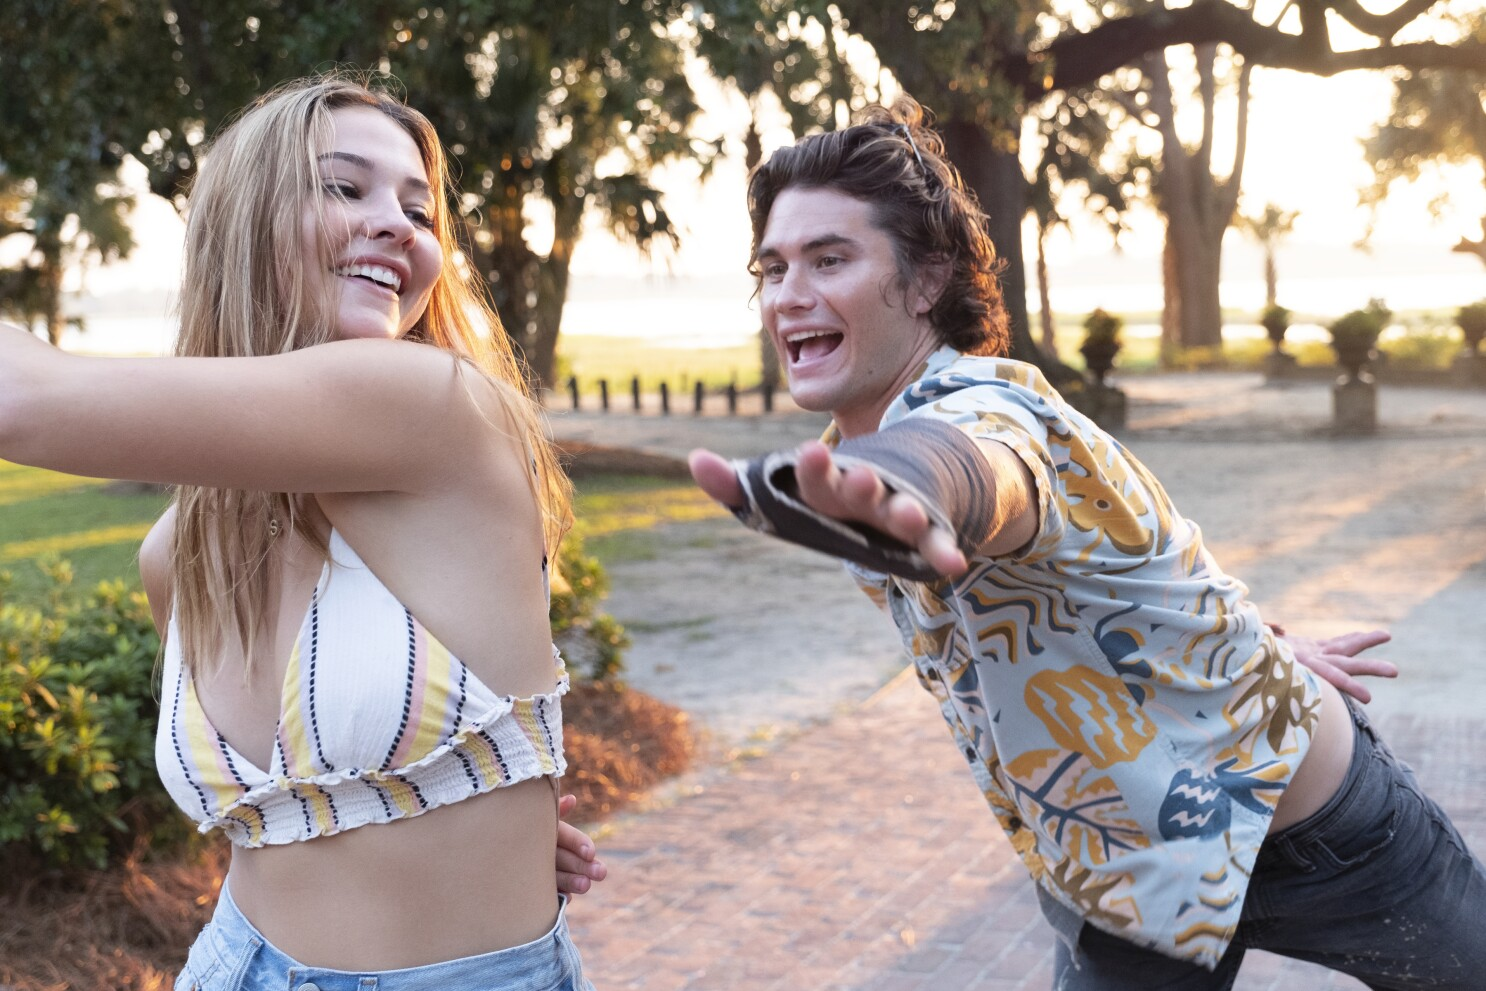 Outer Banks' stars Chase Stokes, Madelyn Cline are dating - Los Angeles  Times